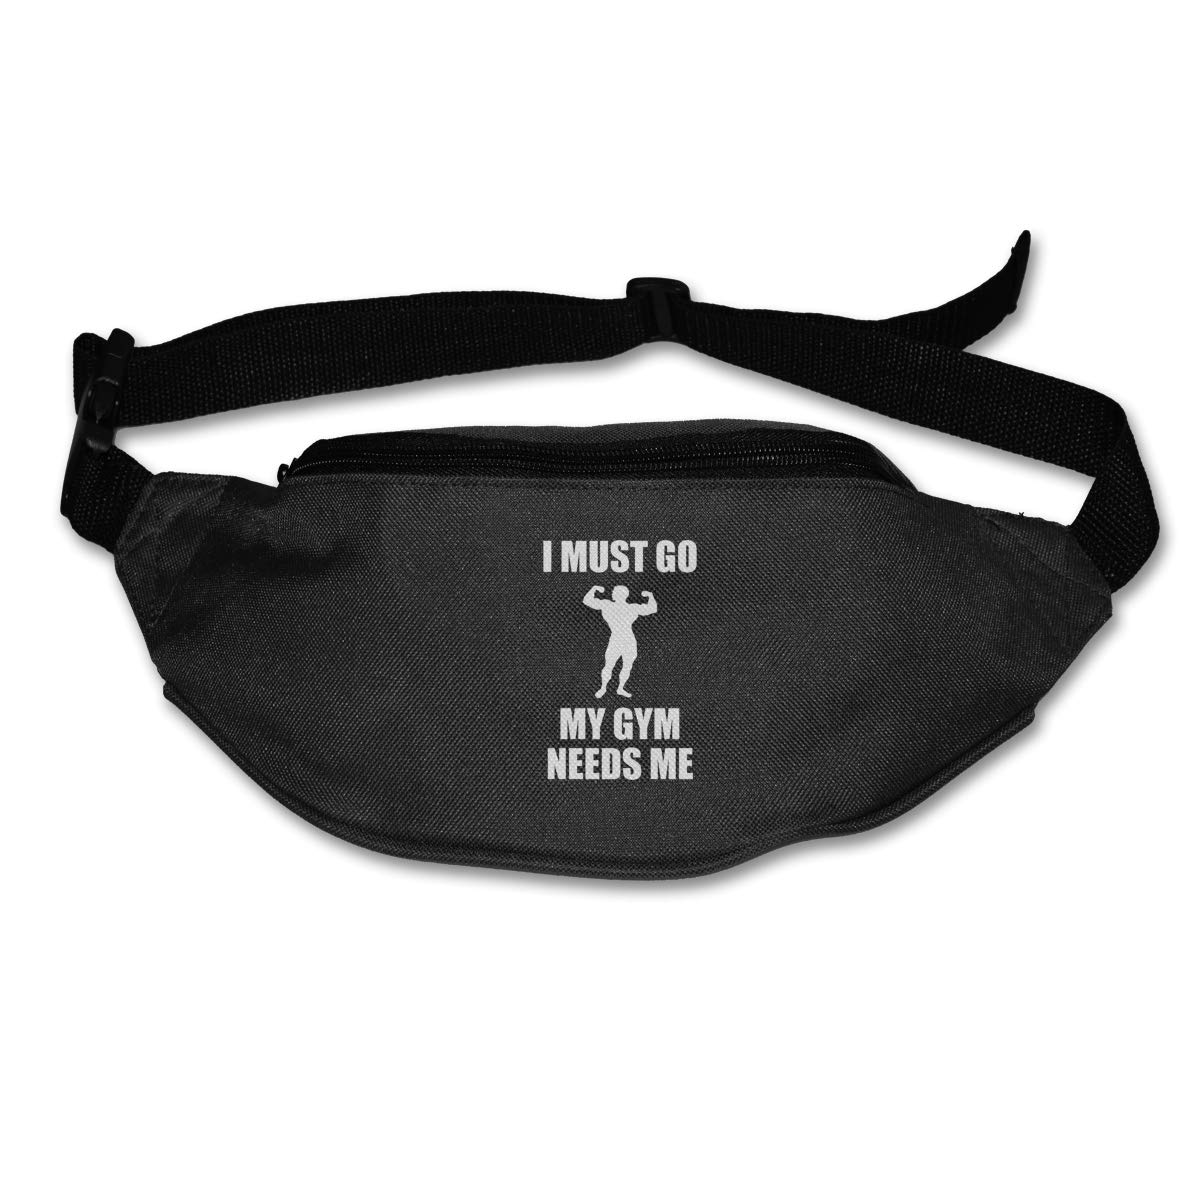 I Must Go My Gym Needs Me Sport Waist Pack Fanny Pack Adjustable For Hike